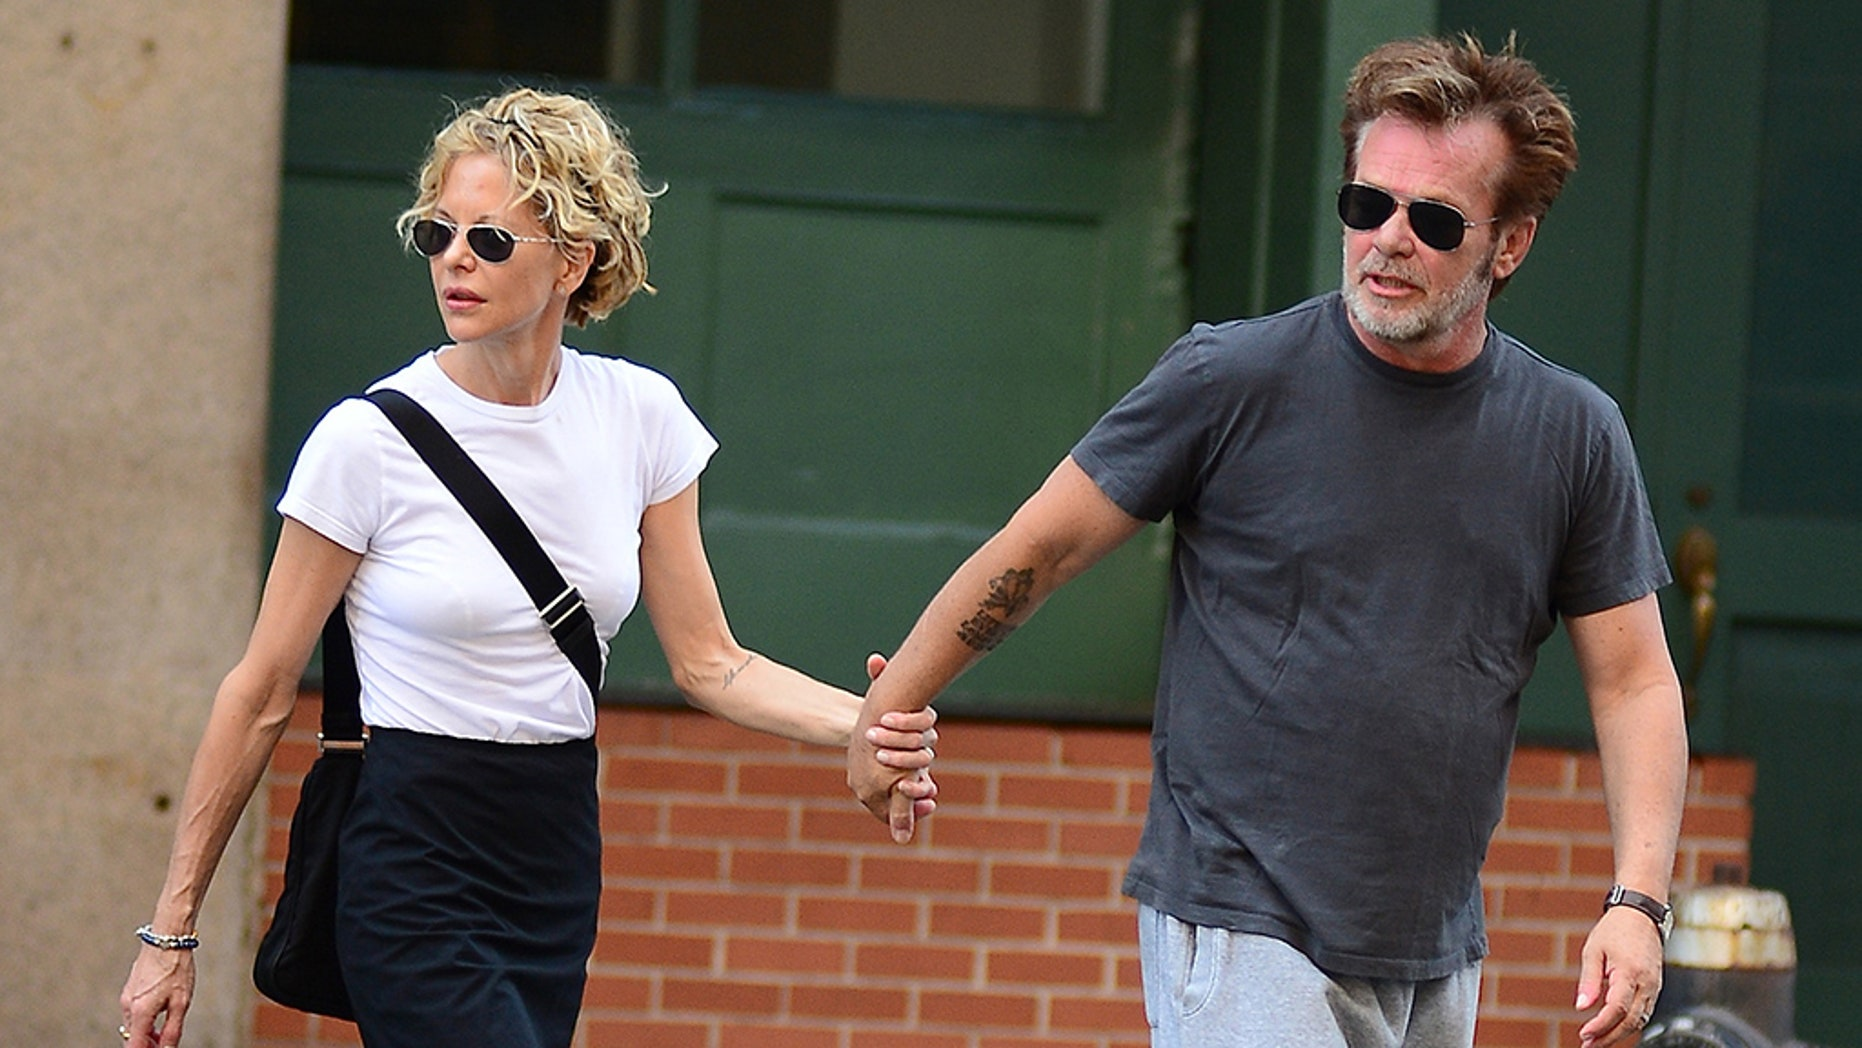 Meg Ryan and John Mellencamp get engaged